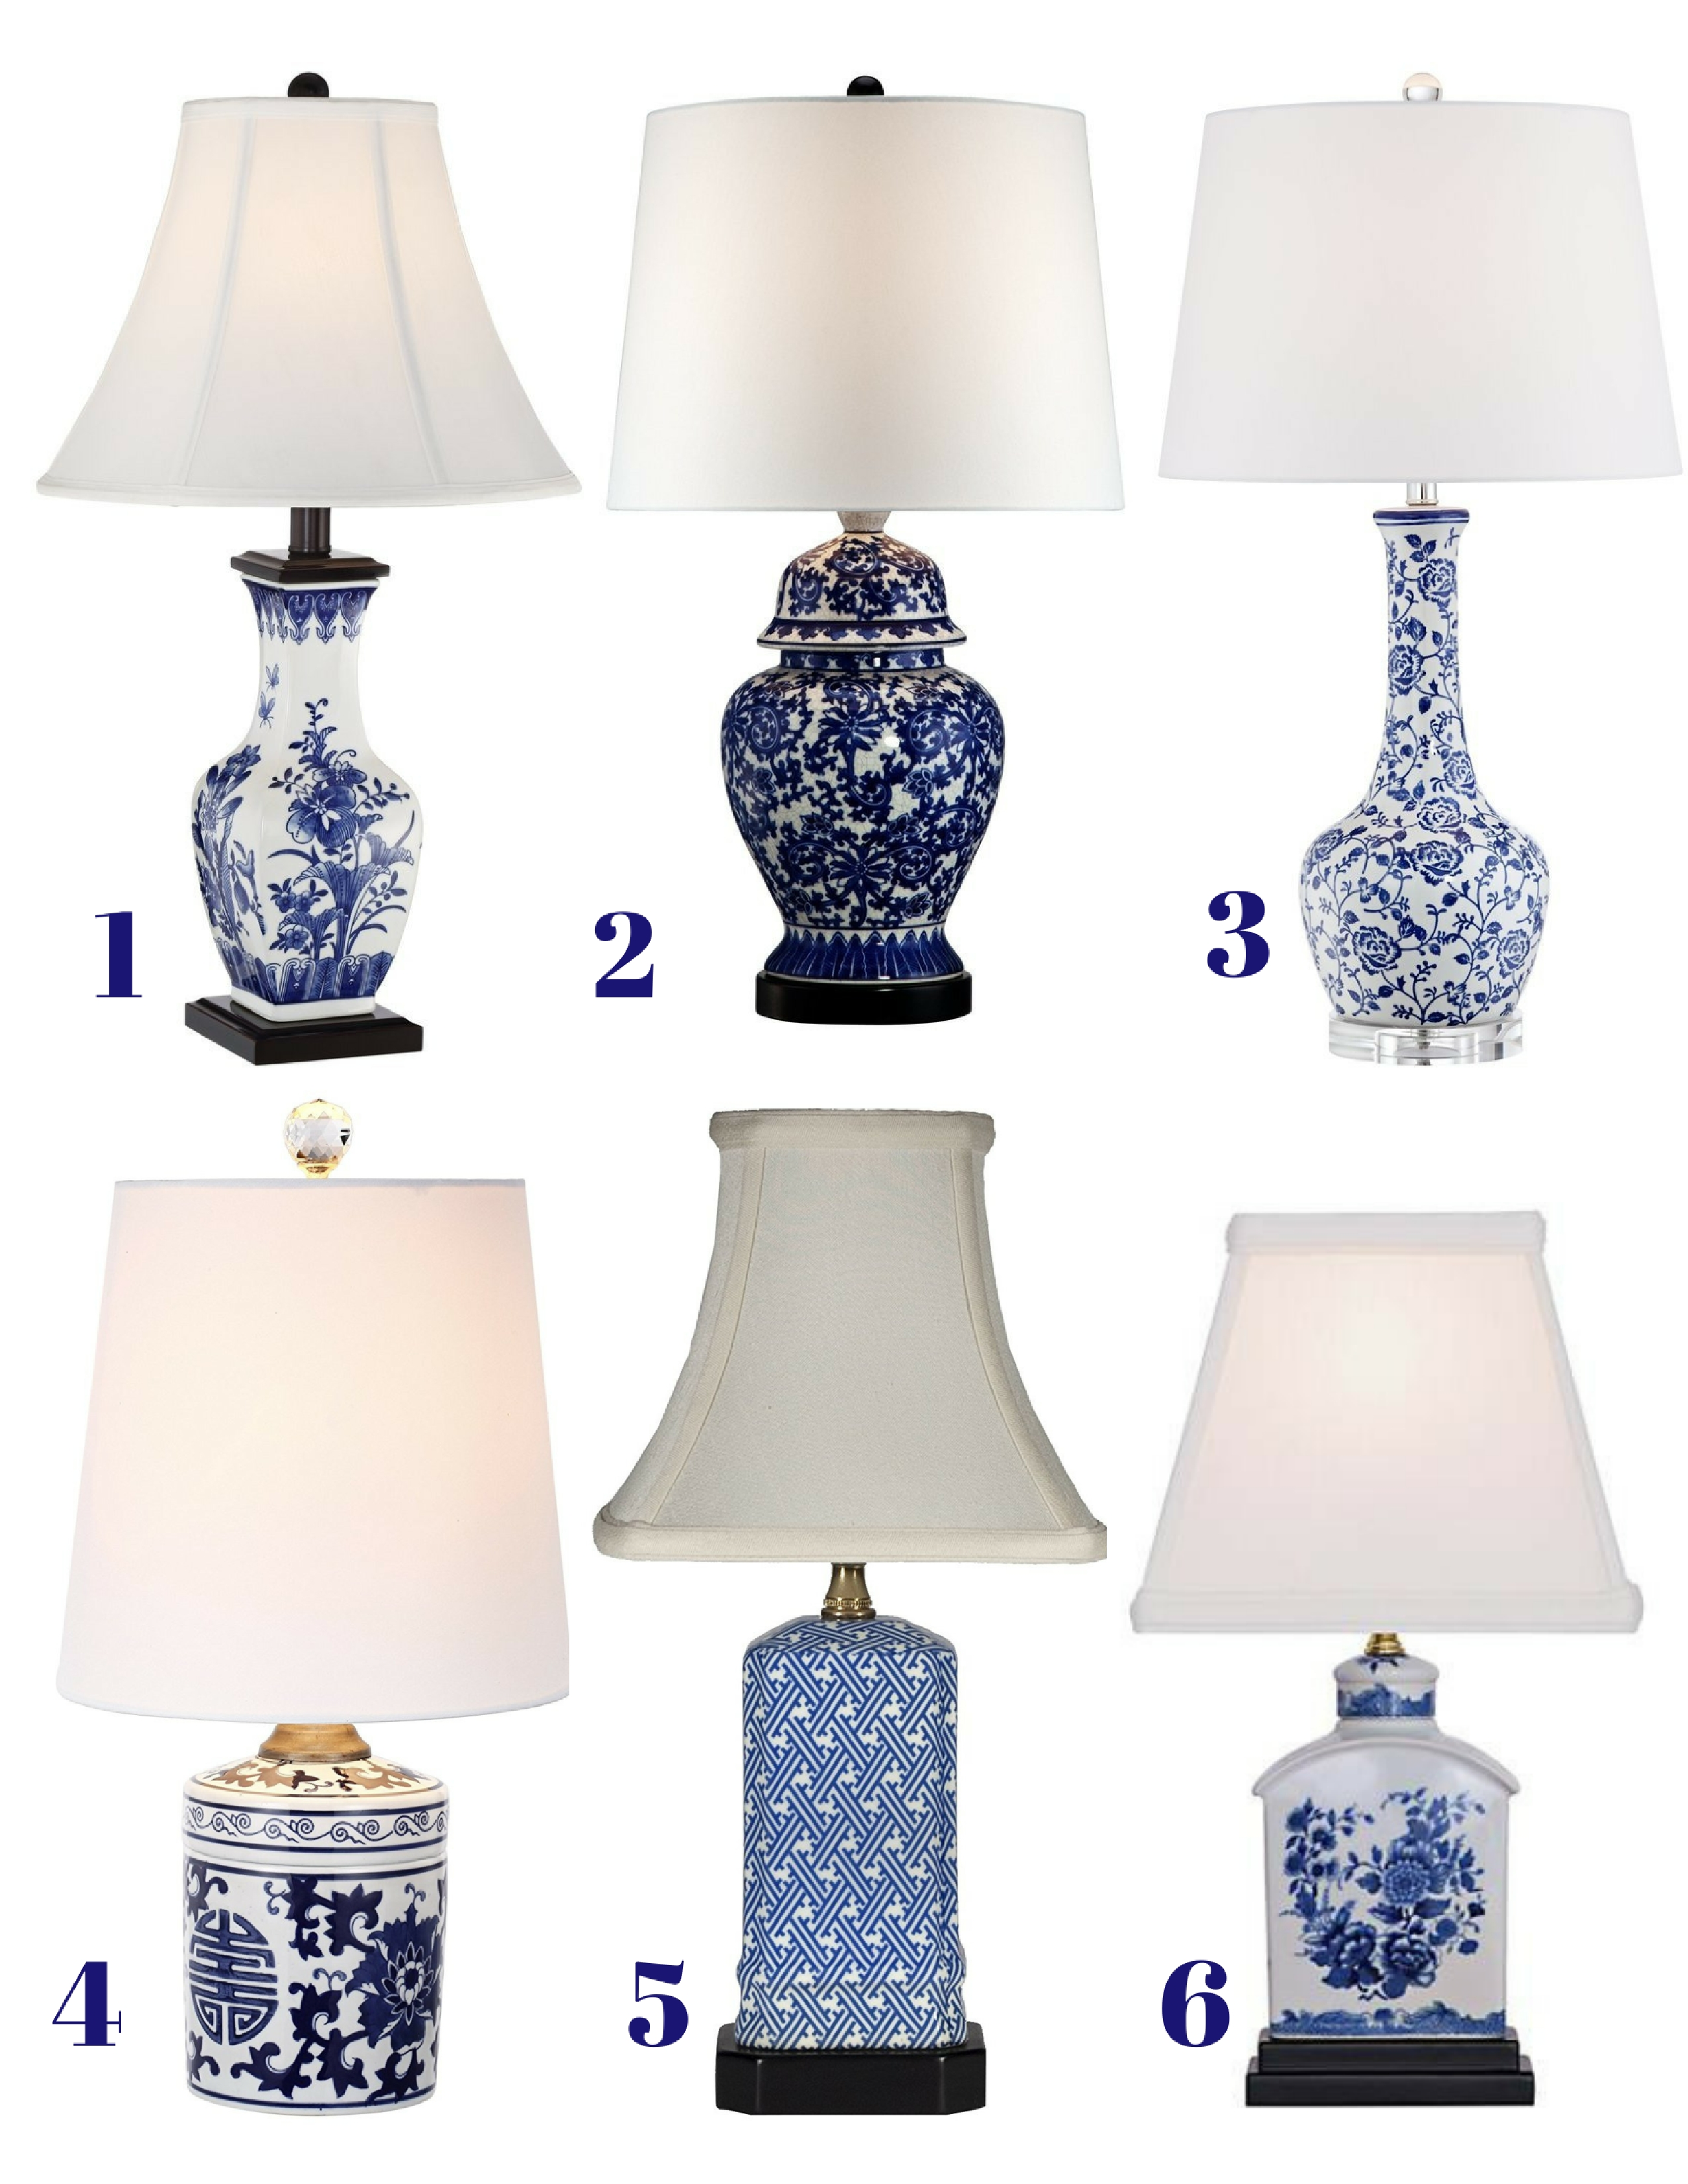 Table lamps archives confettistyle budget friendly blue and white table lamps under 100 geotapseo Image collections